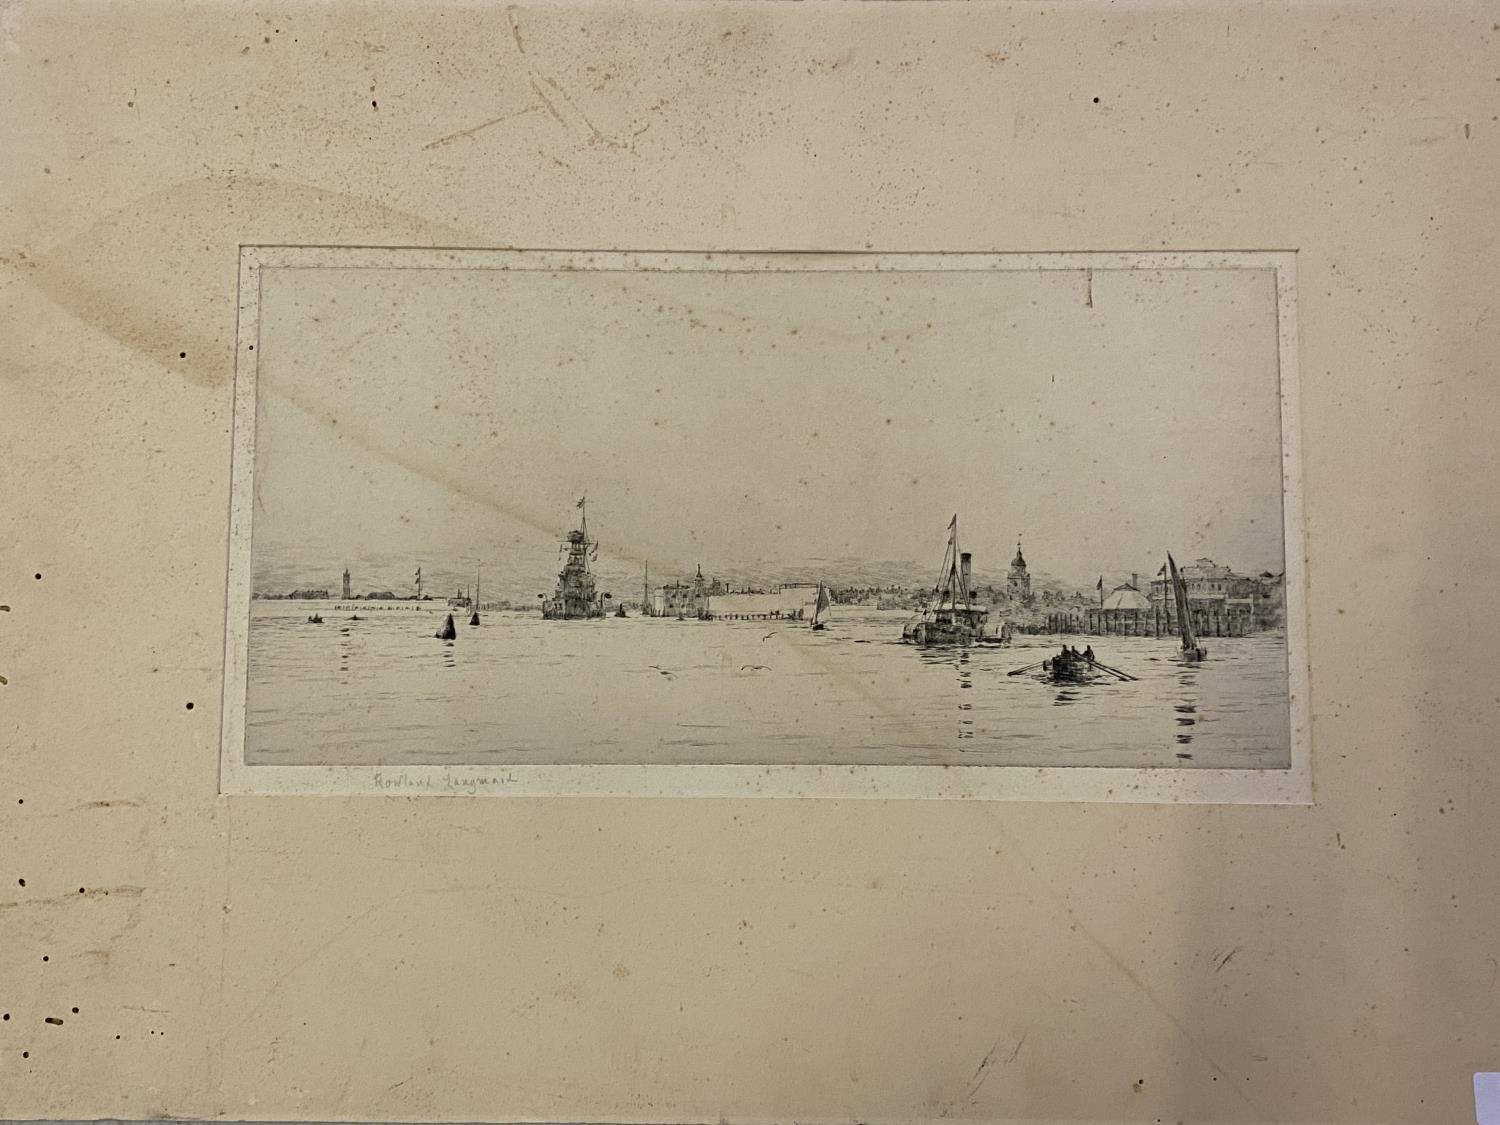 Unframed black and white maritime engraving, signed in pencil on mount, Rowland Langmaid 17 x 35